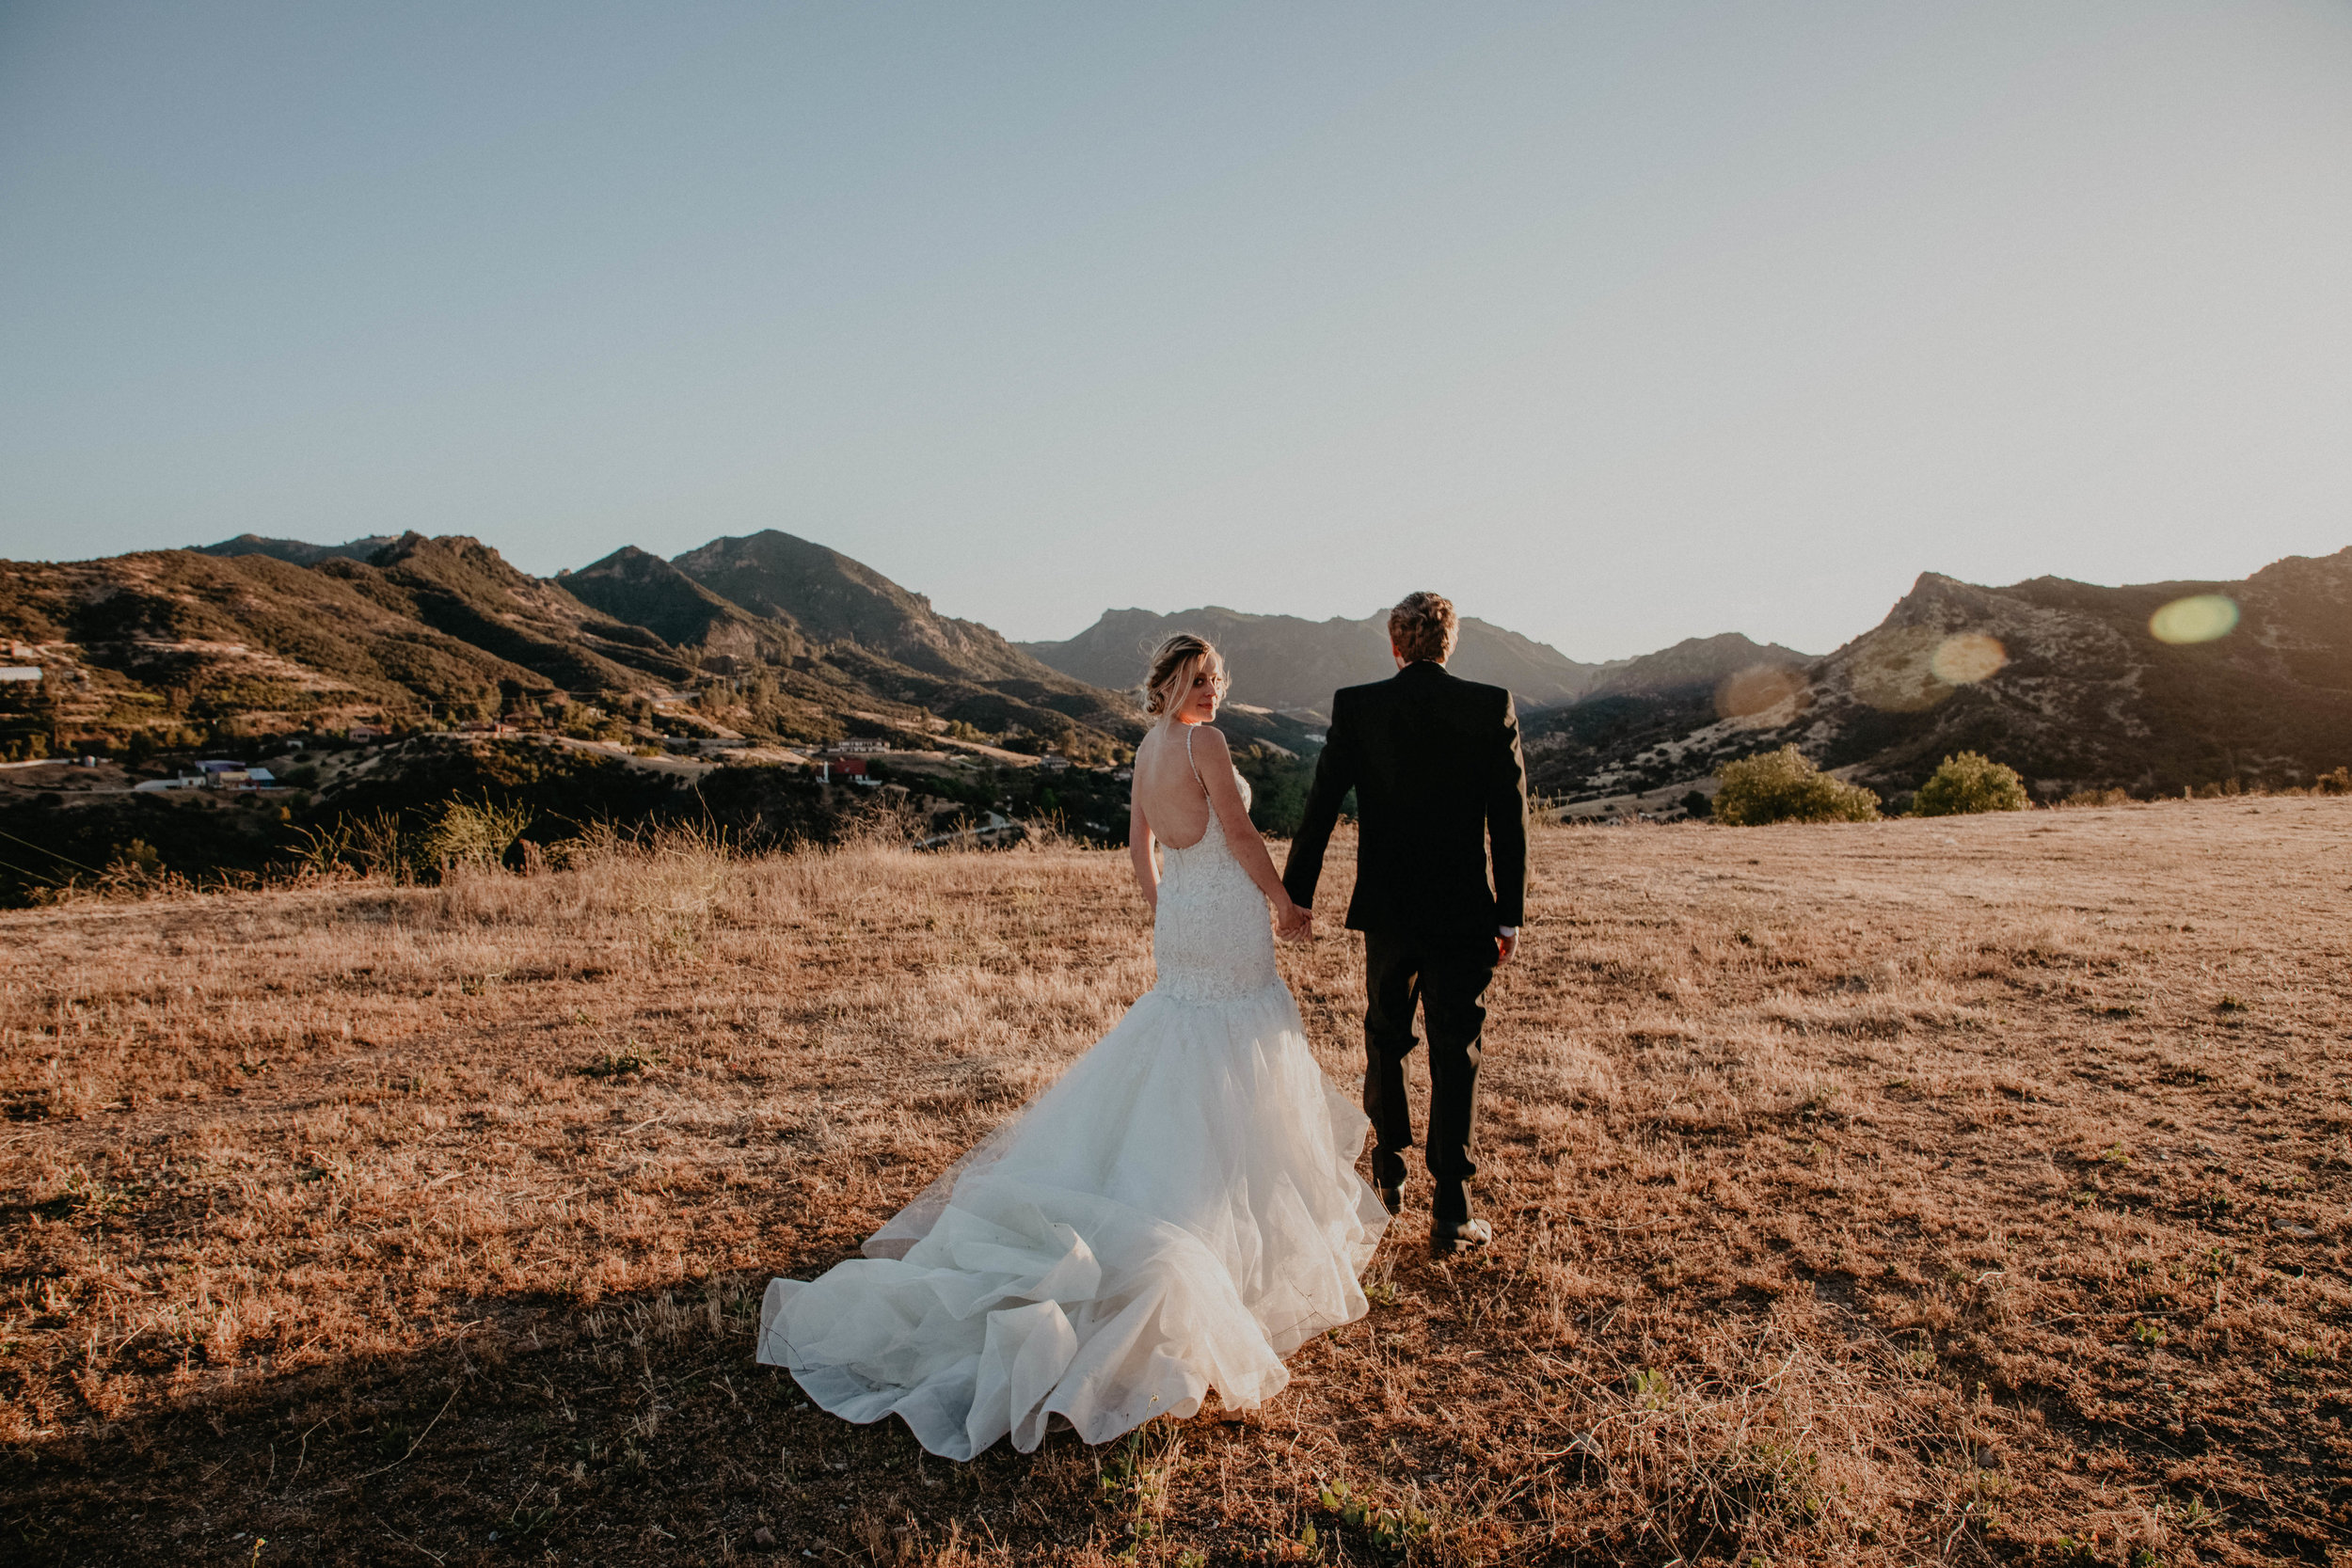 Brookeview Ranch Wedding | Los Angeles, CA